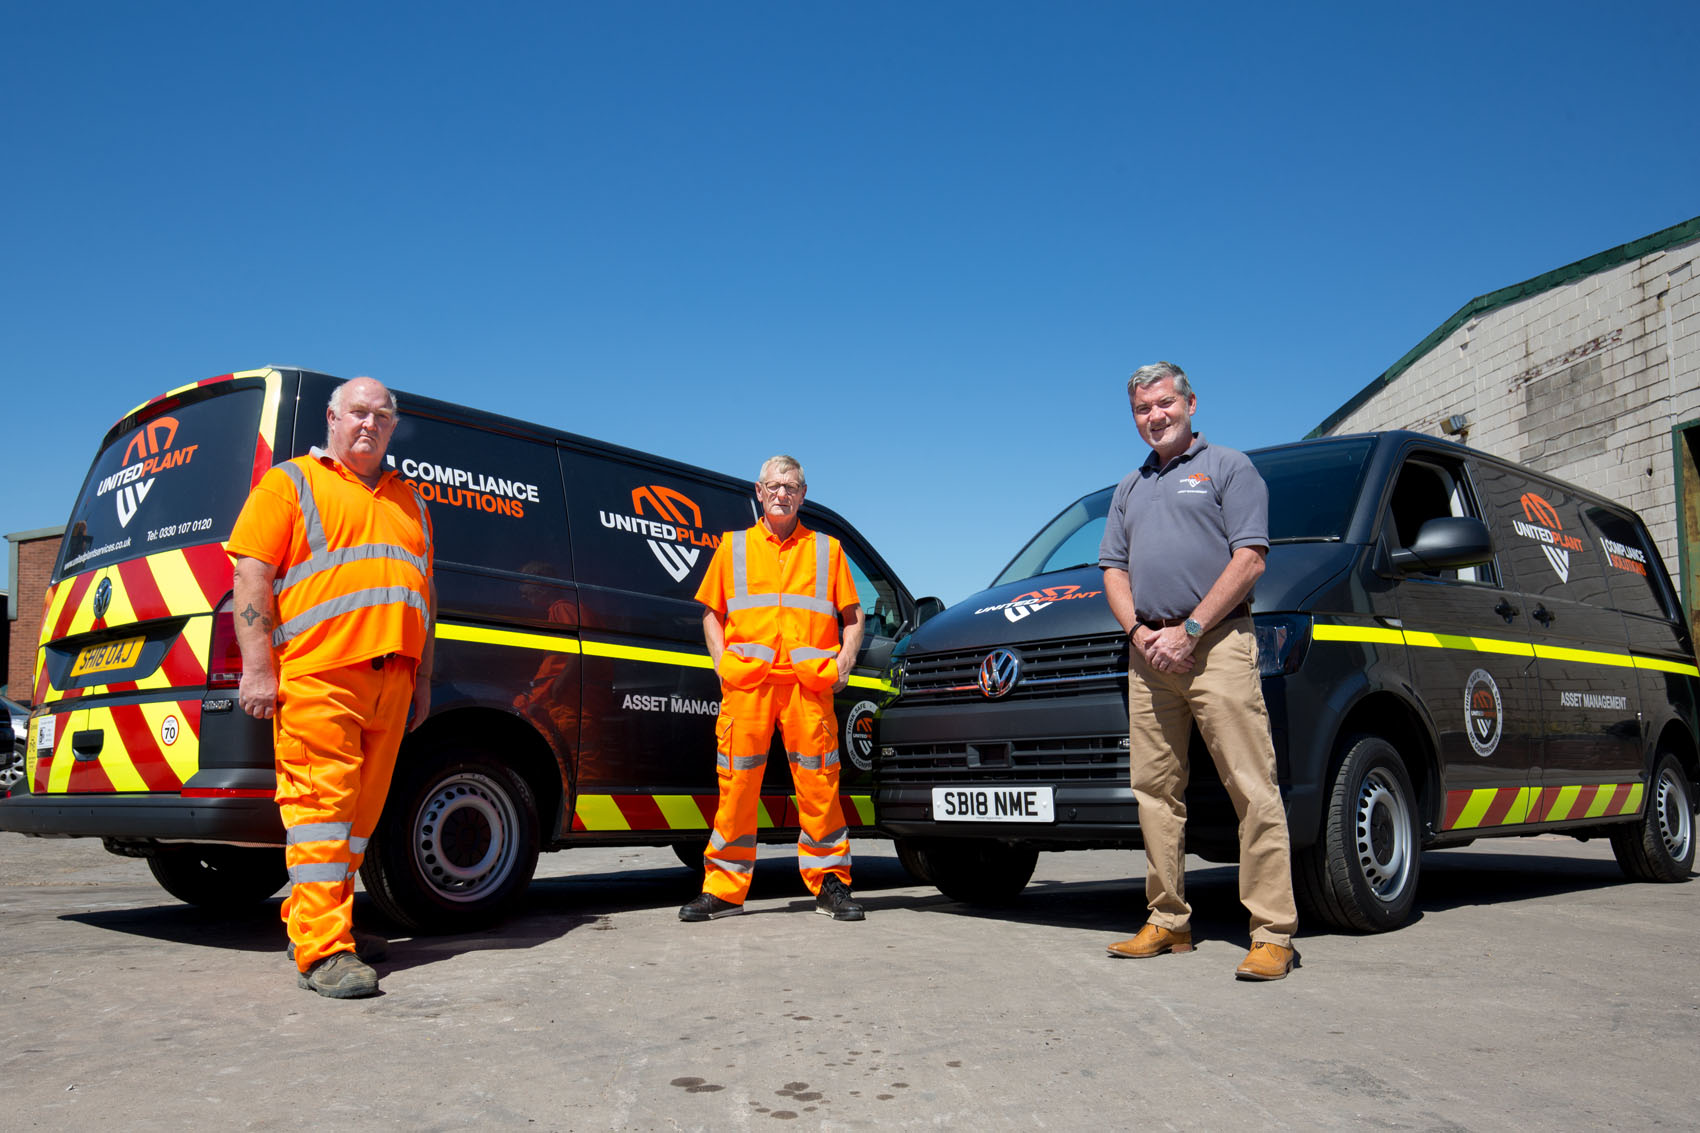 Two enginners in orange overallsand the director in fron of new vans